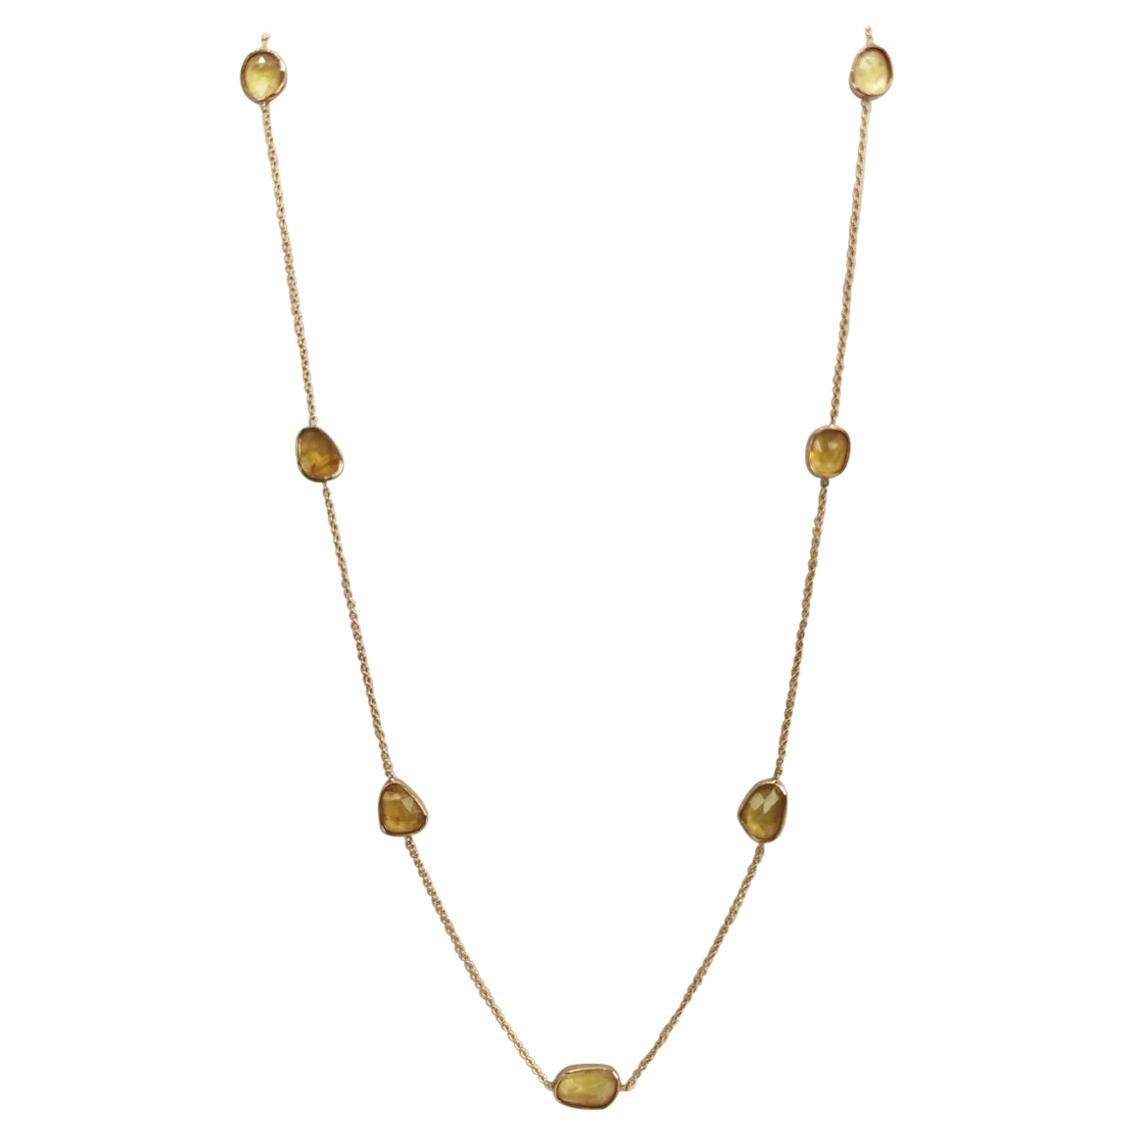 18 Karat Yellow Gold Chain Set with Rosecuts Yellow Sapphire by Marion Jeantet